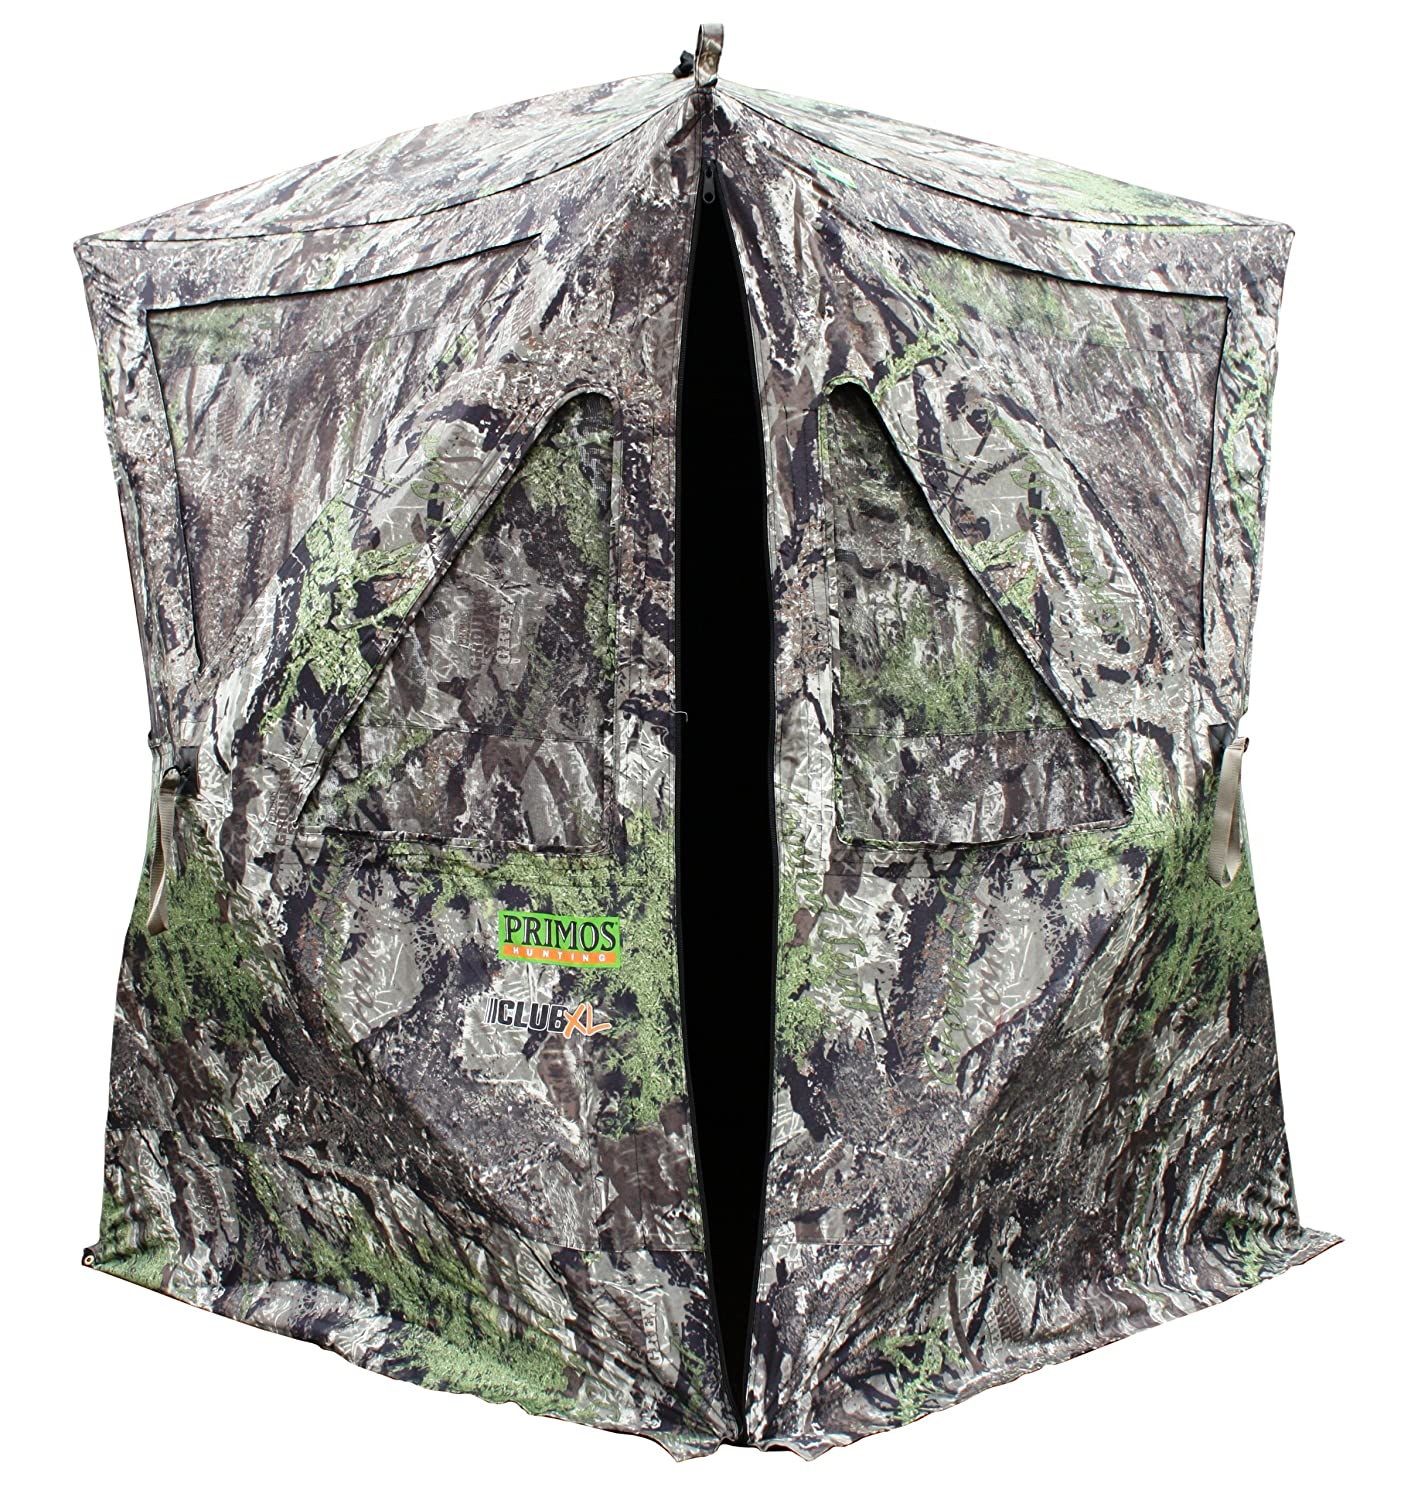 ground all for advantages the safety about hunting and compared especially blinds comfort going offer outdoors sto stands share to tree of aging